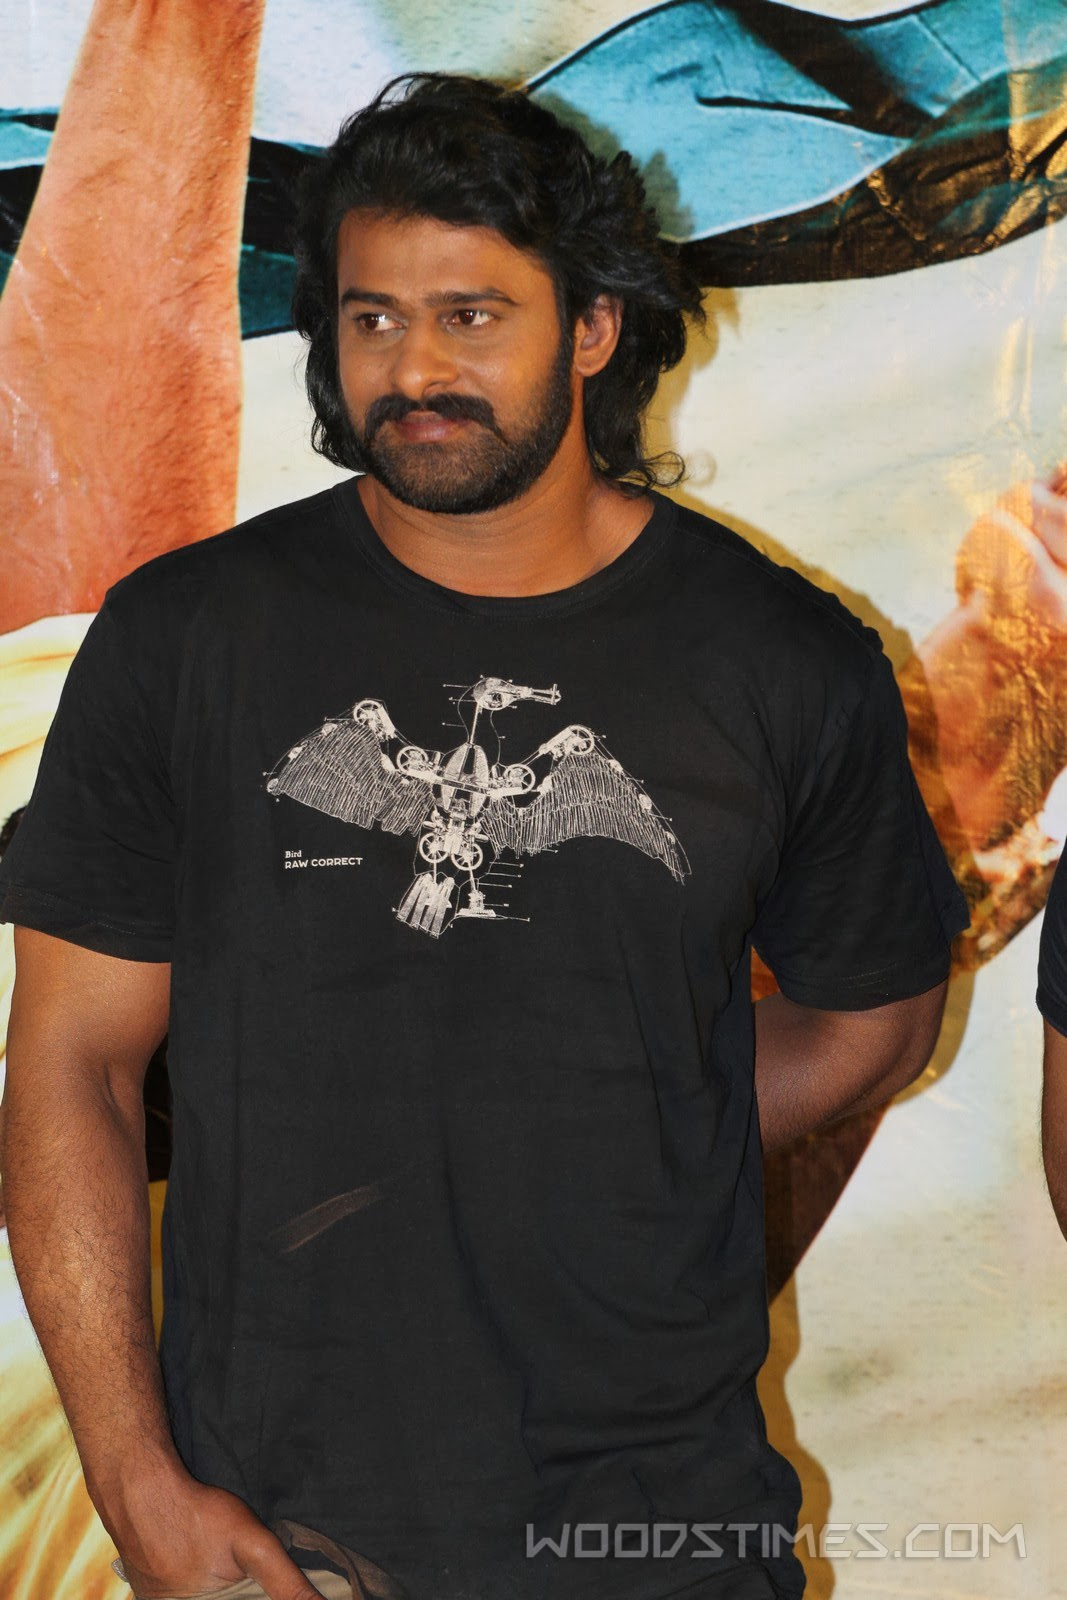 prabhas raju uppalapati hd imagesprabhas raju uppalapati, prabhas raju uppalapati official website, prabhas raju uppalapati height, prabhas raju uppalapati facebook, prabhas raju uppalapati marriage, prabhas raju uppalapati house address, prabhas raju uppalapati wife, prabhas raju uppalapati biography, prabhas raju uppalapati family photos, prabhas raju uppalapati movies list in hindi, prabhas raju uppalapati twitter, prabhas raju uppalapati wiki, prabhas raju uppalapati personal life, prabhas raju uppalapati girlfriend, prabhas raju uppalapati hindi dubbed movies, prabhas raju uppalapati hd images, prabhas raju uppalapati instagram, prabhas raju uppalapati movies in hindi, prabhas raju uppalapati body